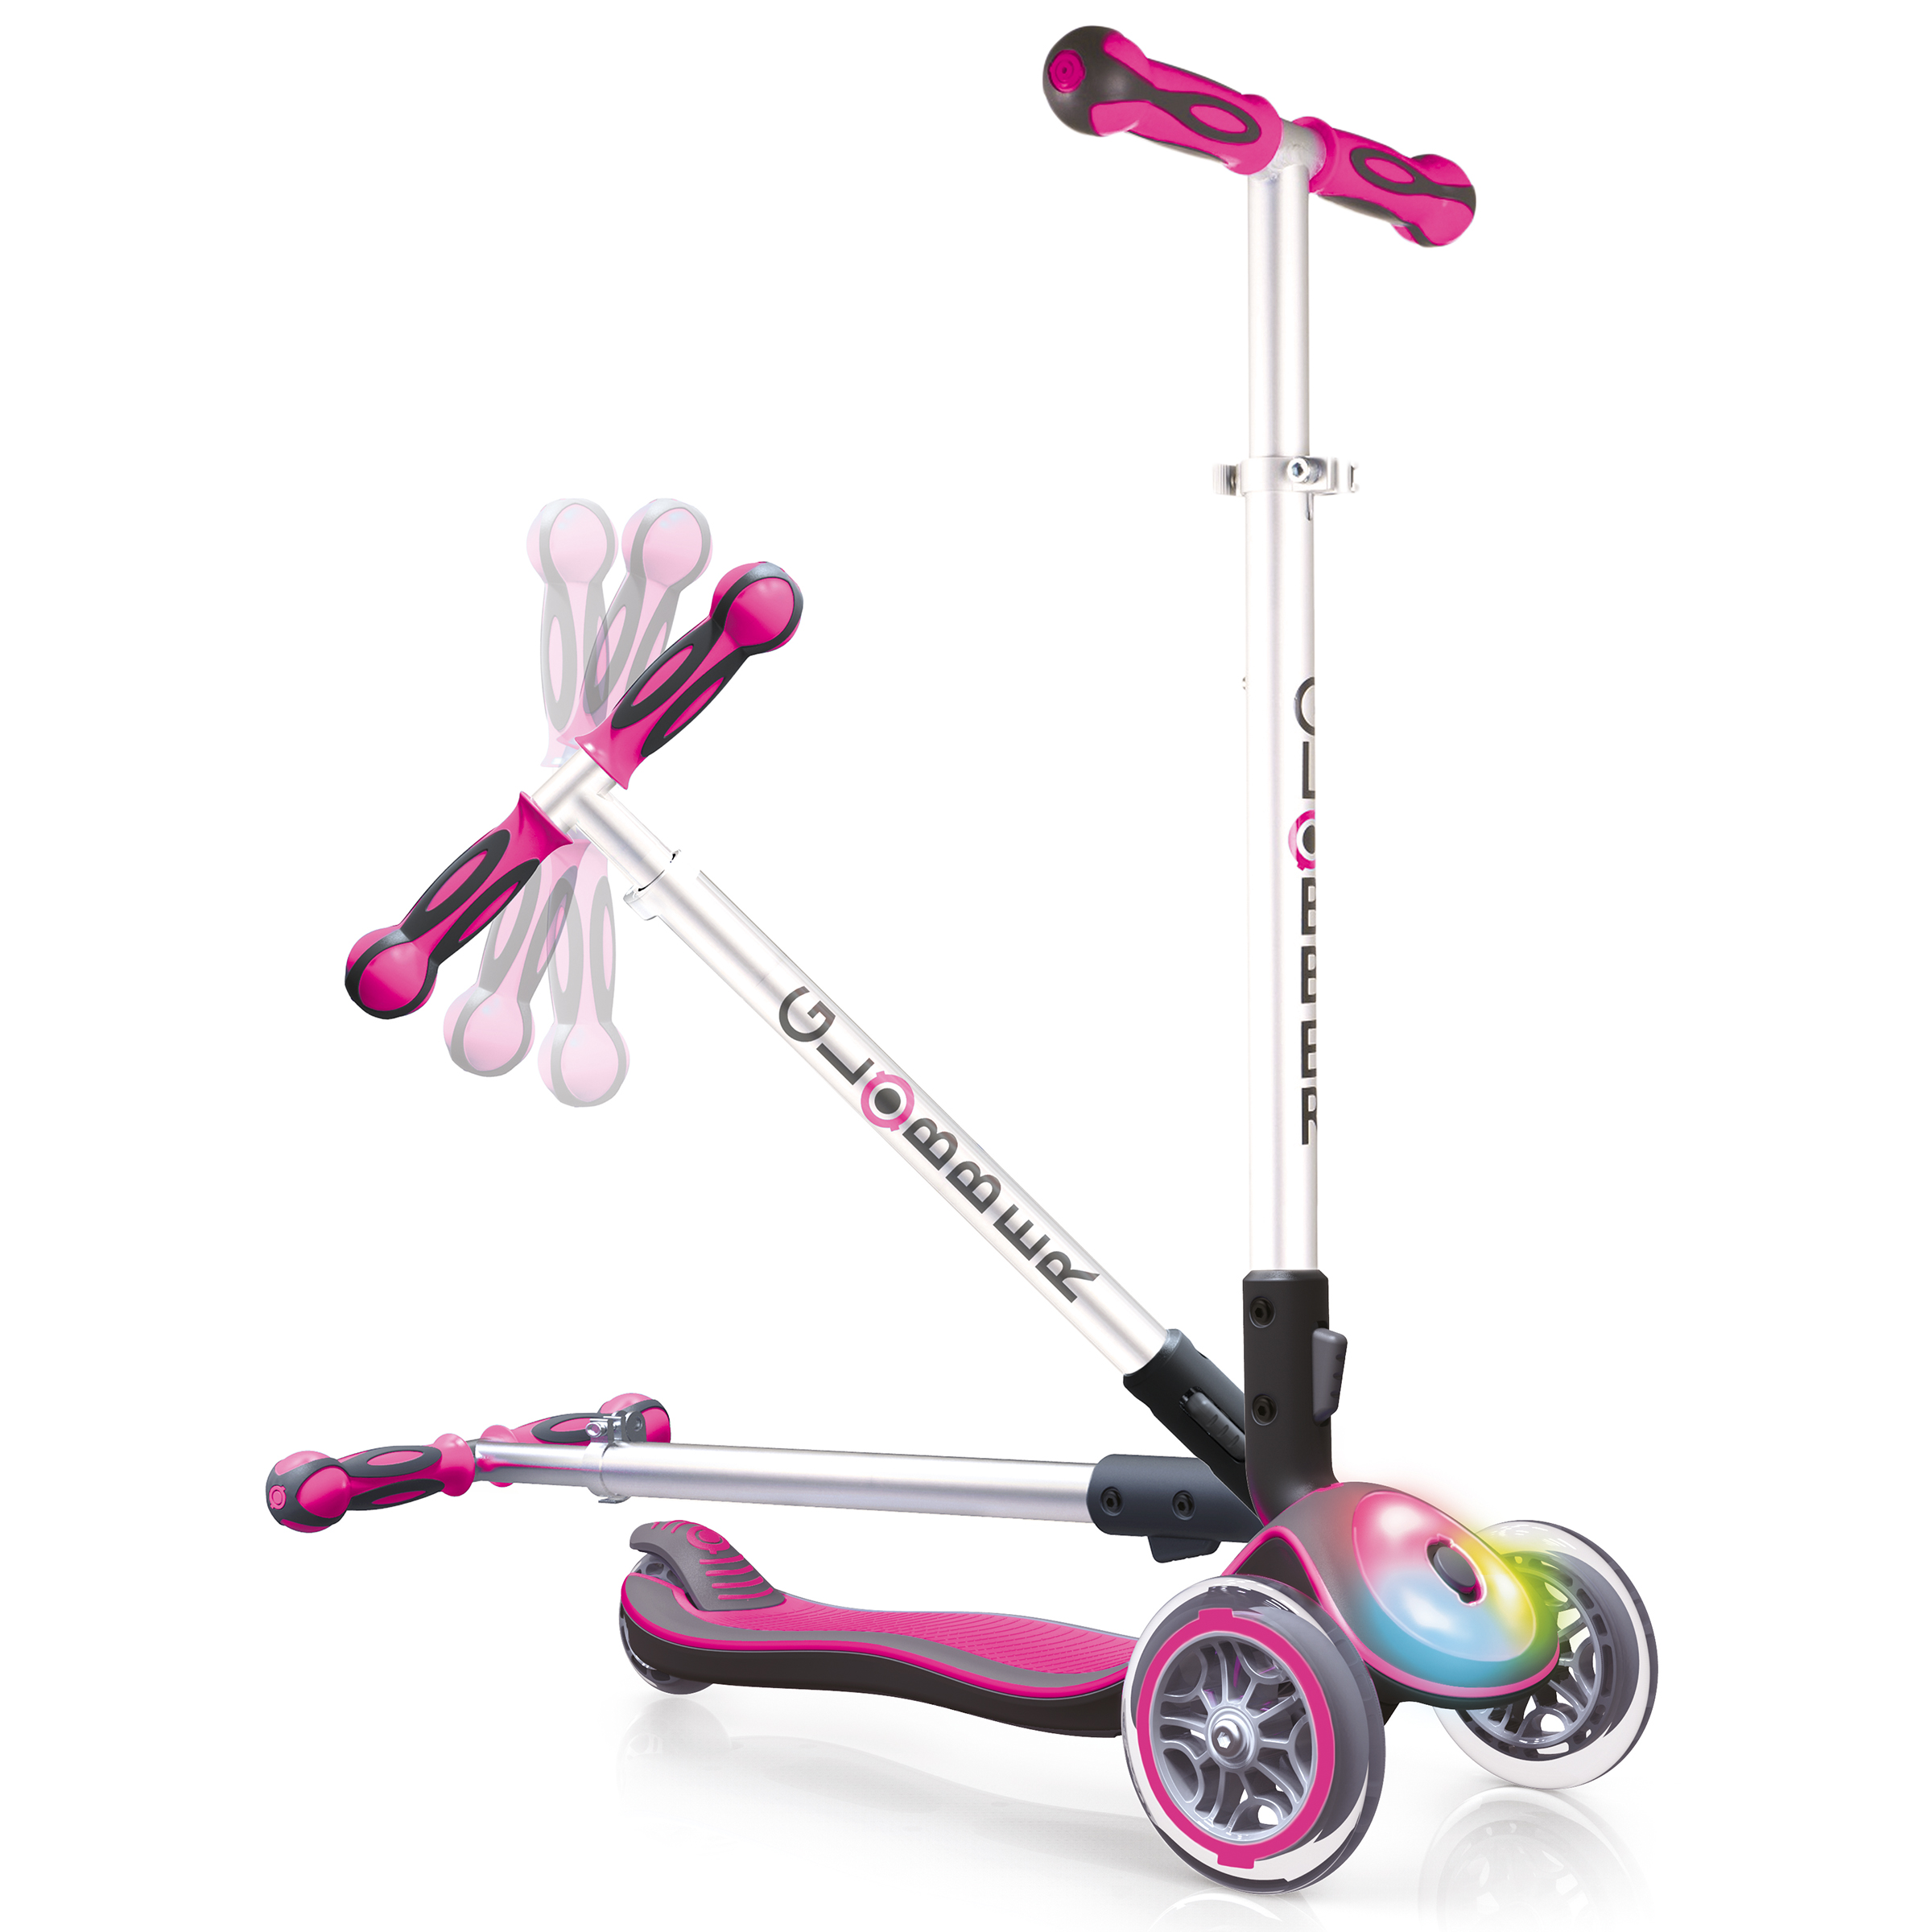 Globber Elite 3 Wheel Folding Adjustable Height Scooter with LED Lights (Pink) by Globber Scooters